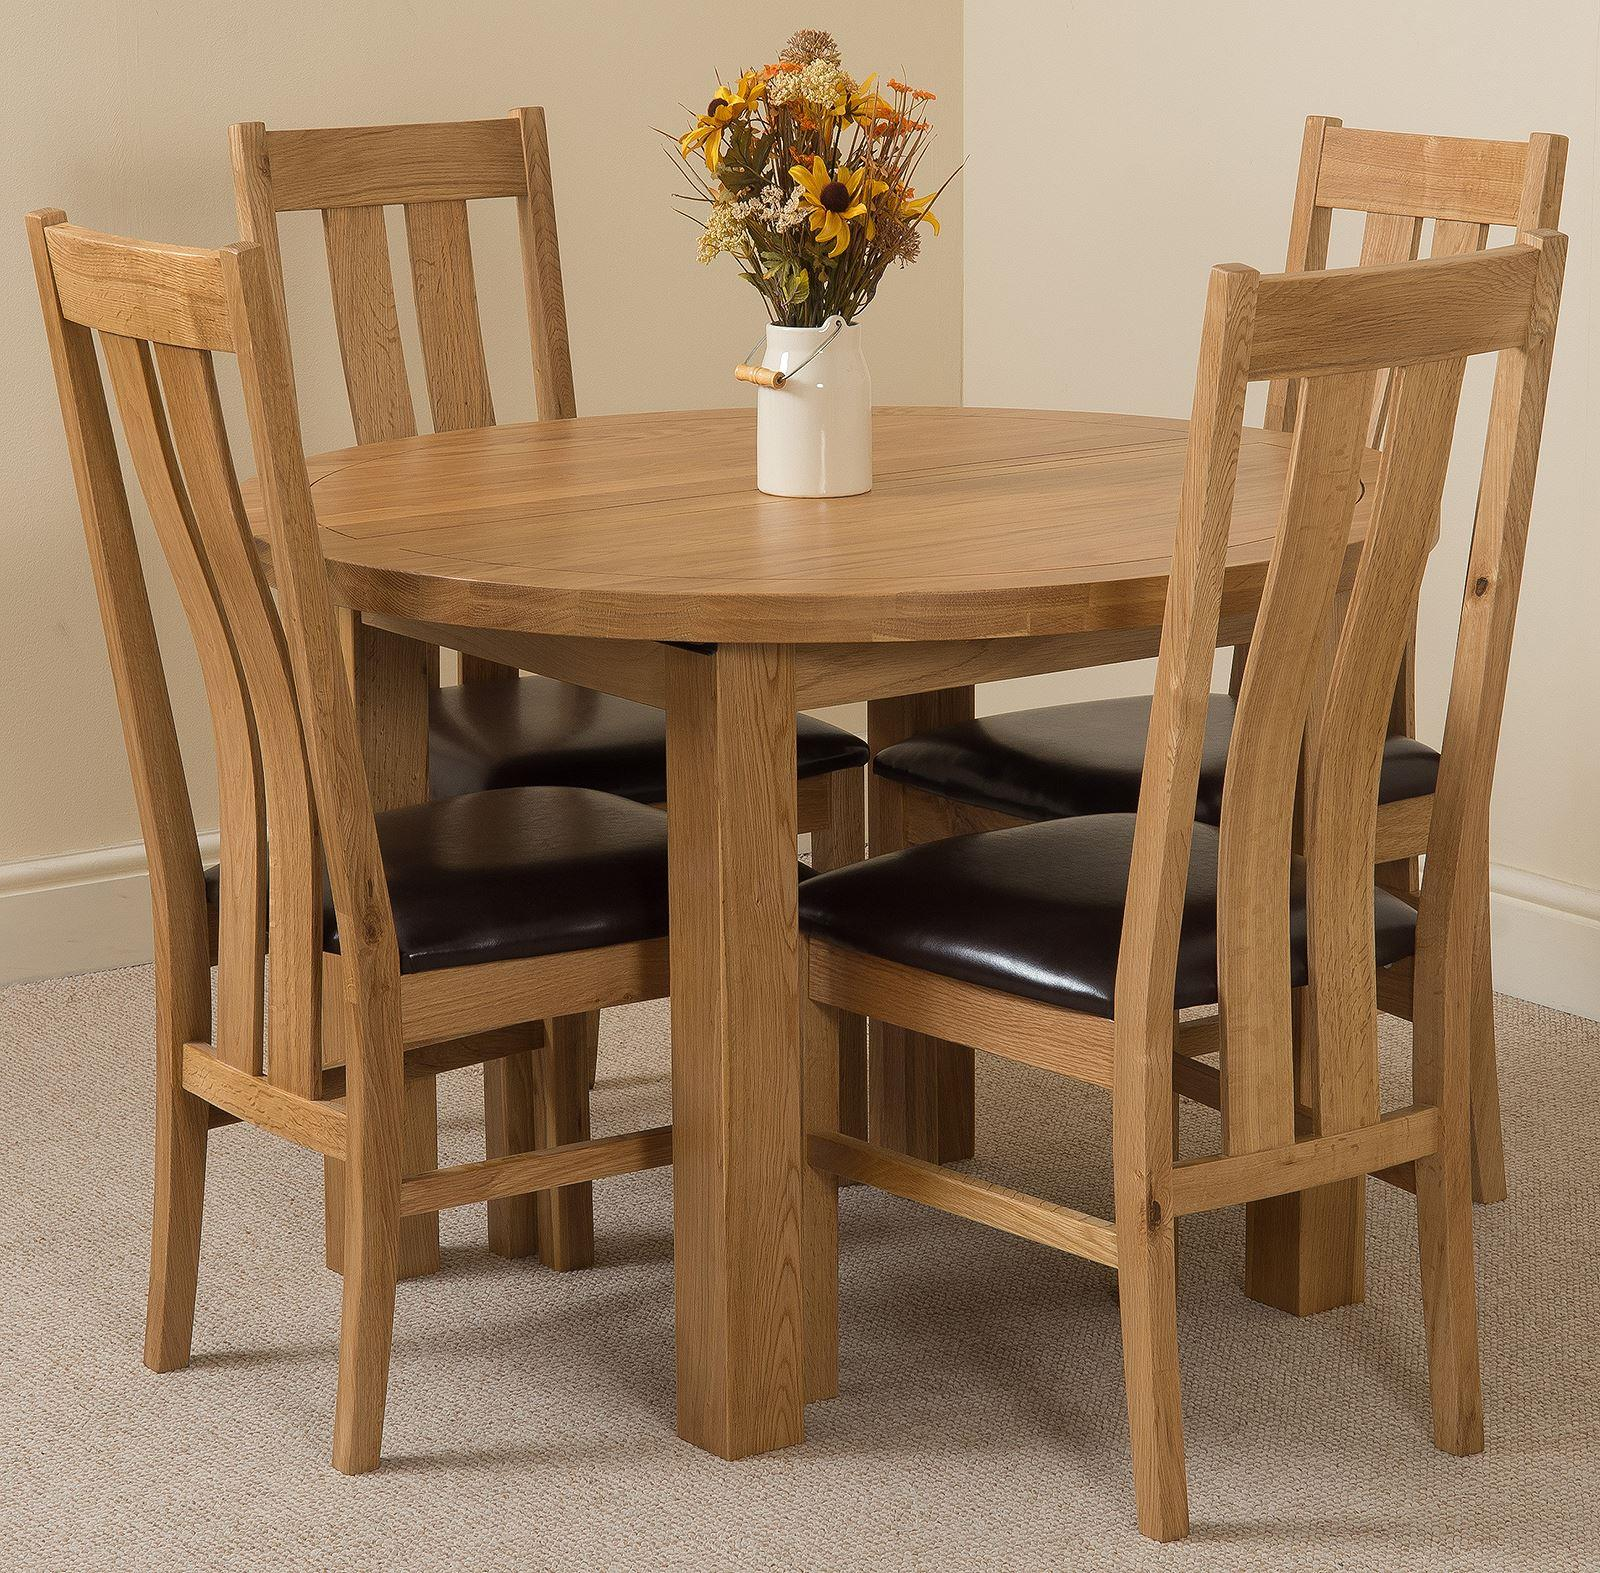 Edmonton Oak Extending Round Dining Table & 4 Princeton Solid Oak Leather Chairs